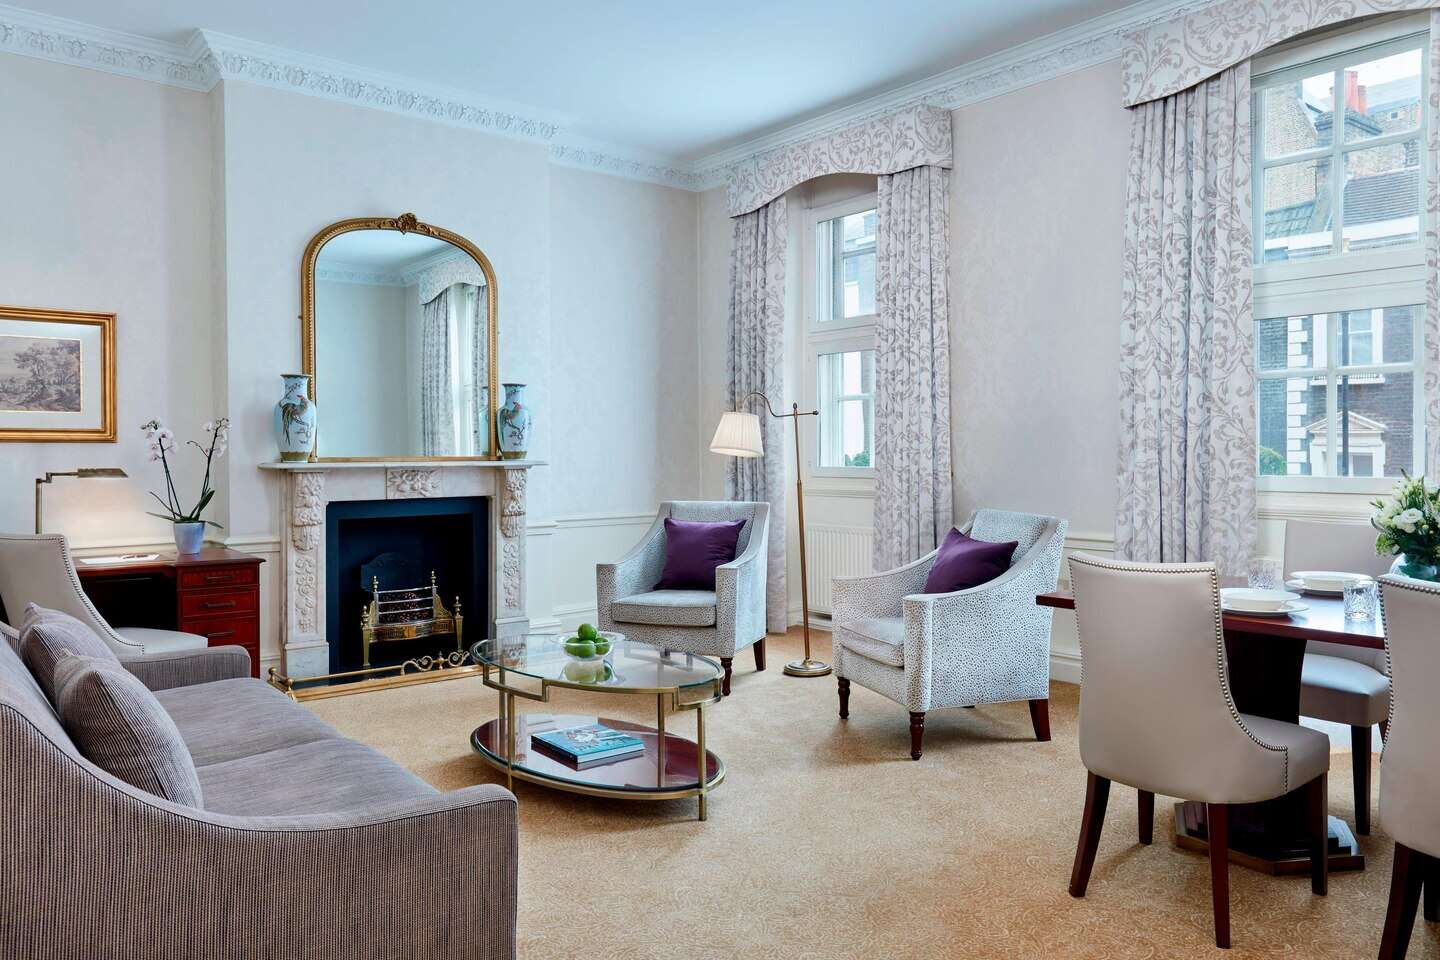 Luxury vacation rentals europe - United kingdom - London area - Grand residences by marriott mayfair - Deluxe 2 BDM - Image 1/9